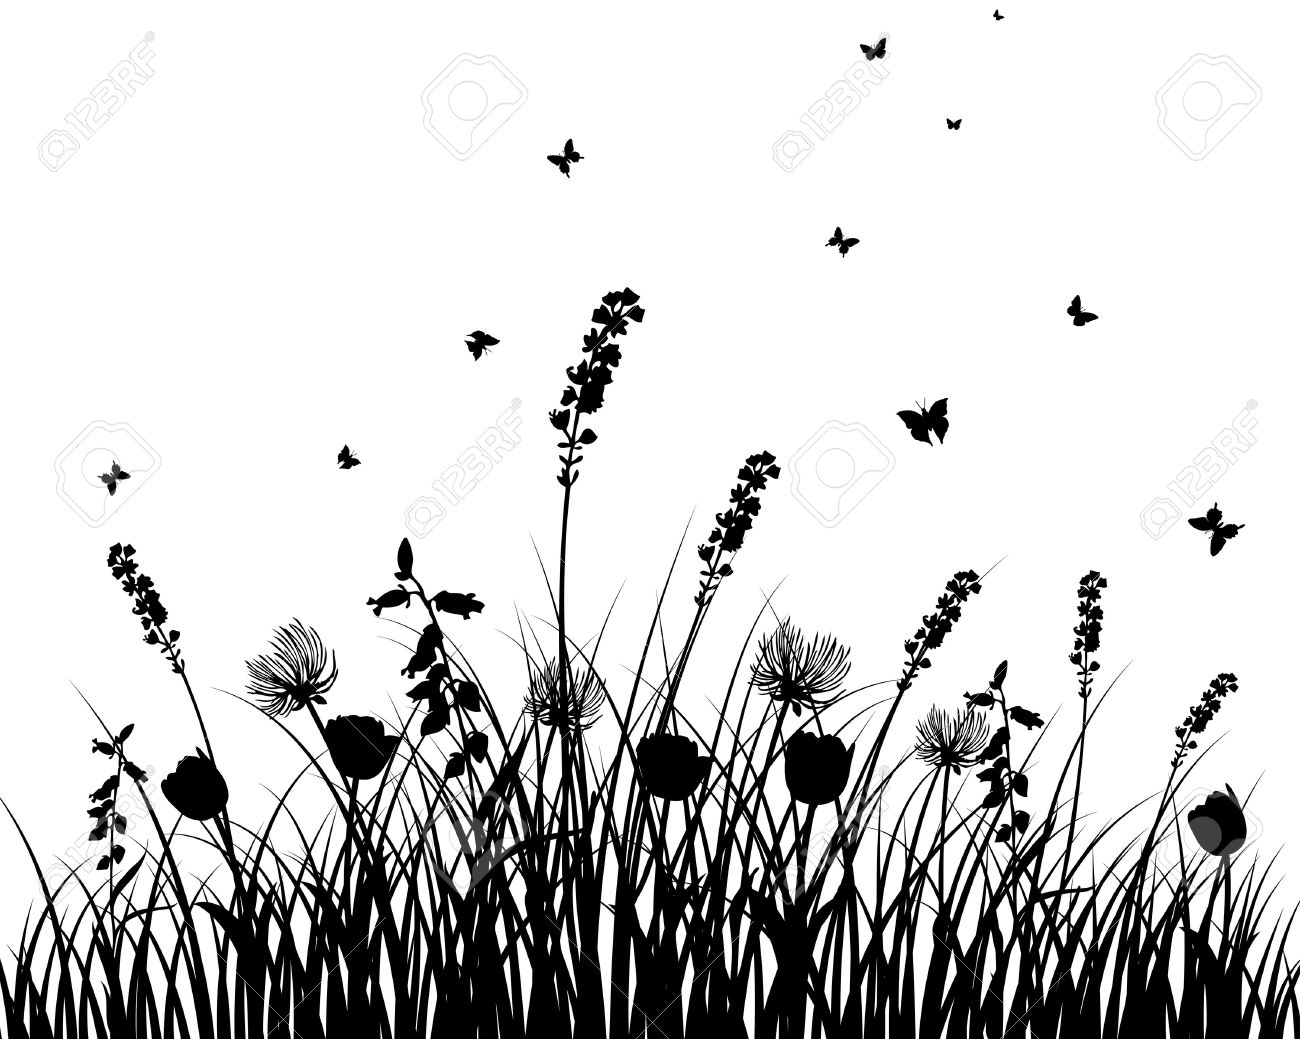 Grass Flowers Clipart Silhouette 20 Free Cliparts